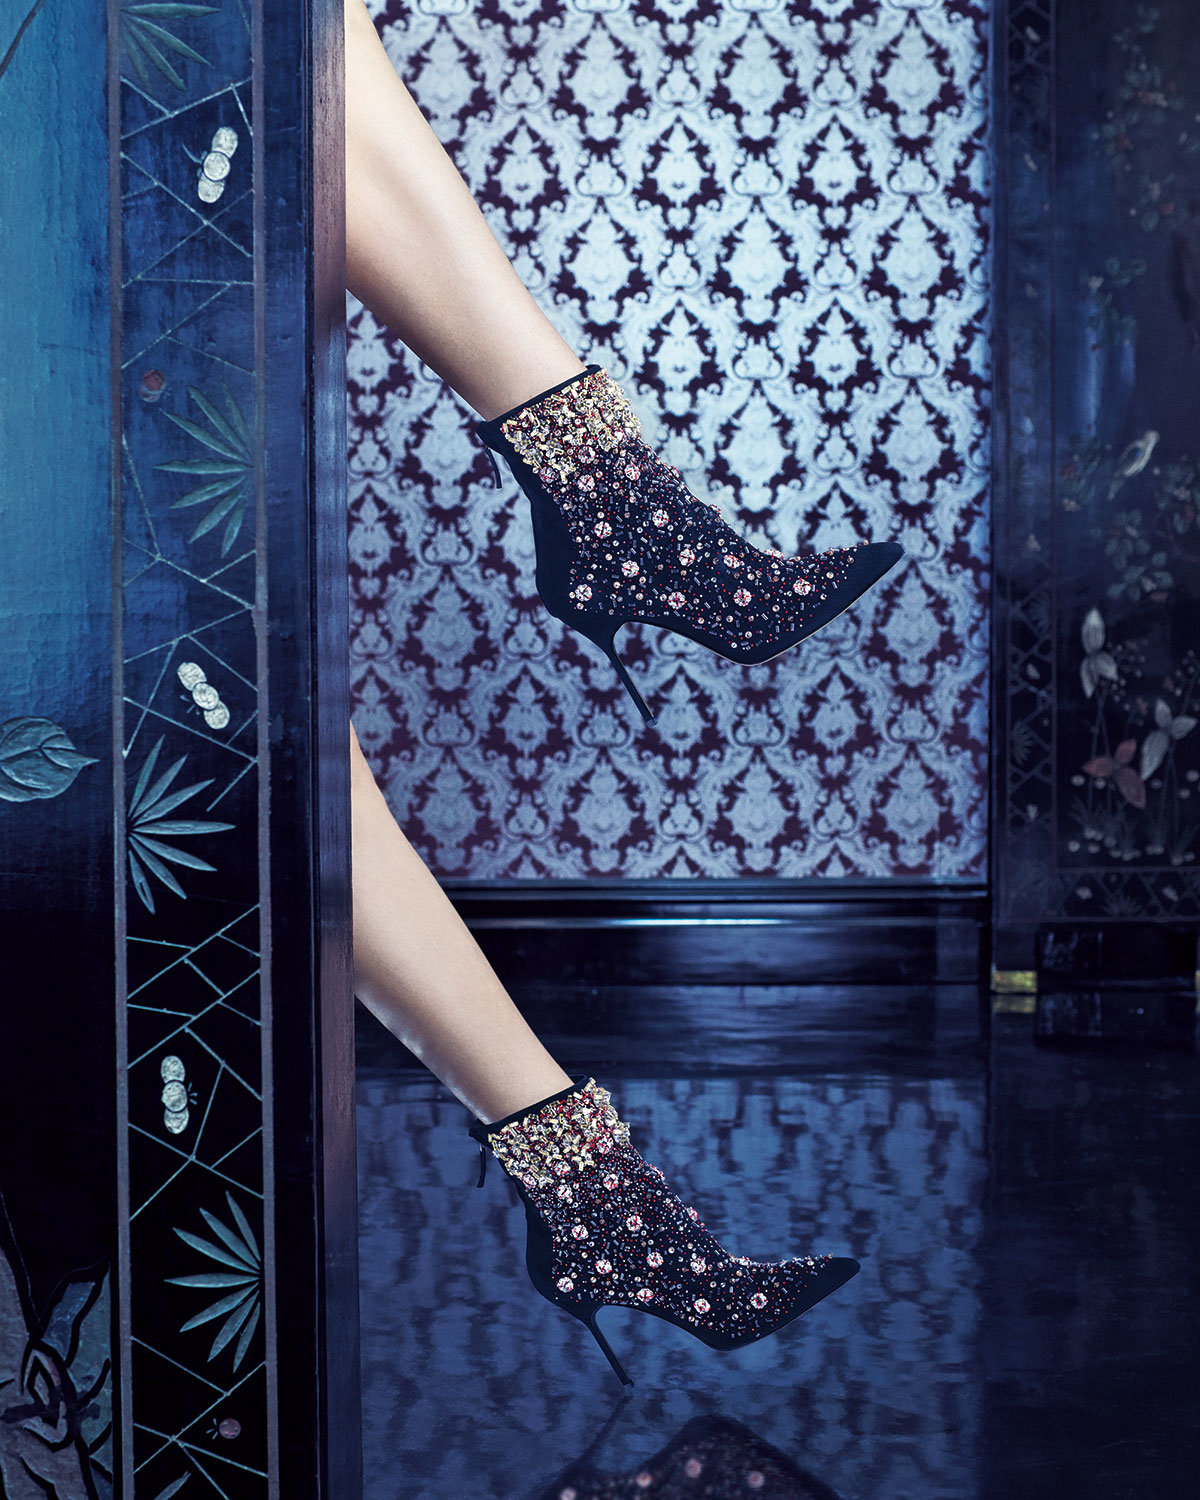 Inside the Manolo Blahnik Documentary - Black zarina embroidered suede boot - Manolo - Luxury shoes - Designer shoes